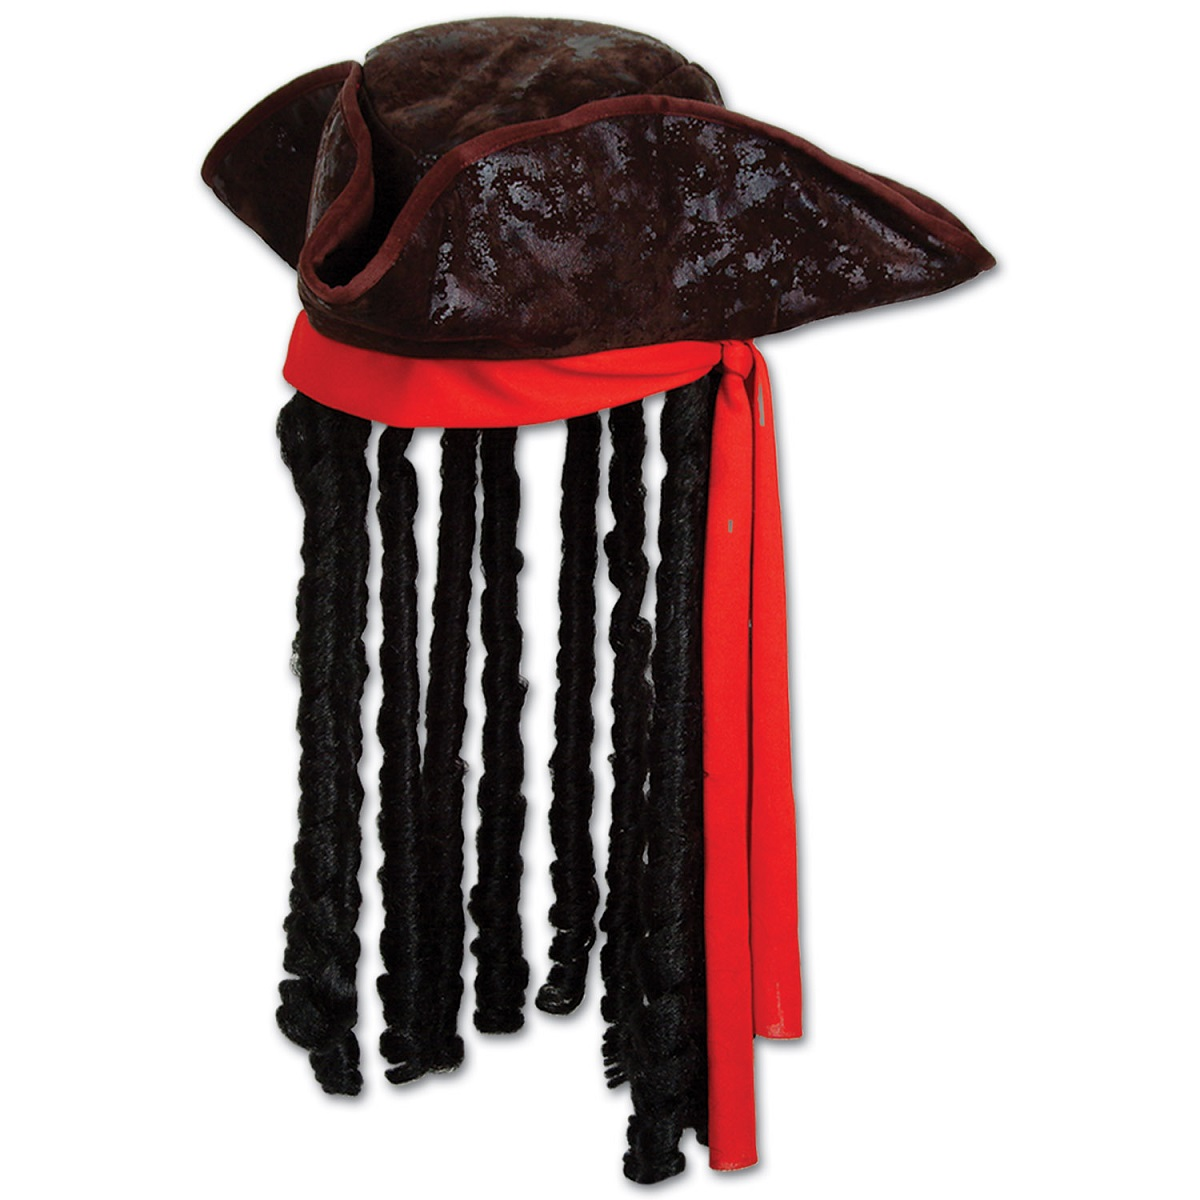 Pack of 6 Ship Ahoy Caribbean Pirate Hat With Bandanna and Dreadlocks